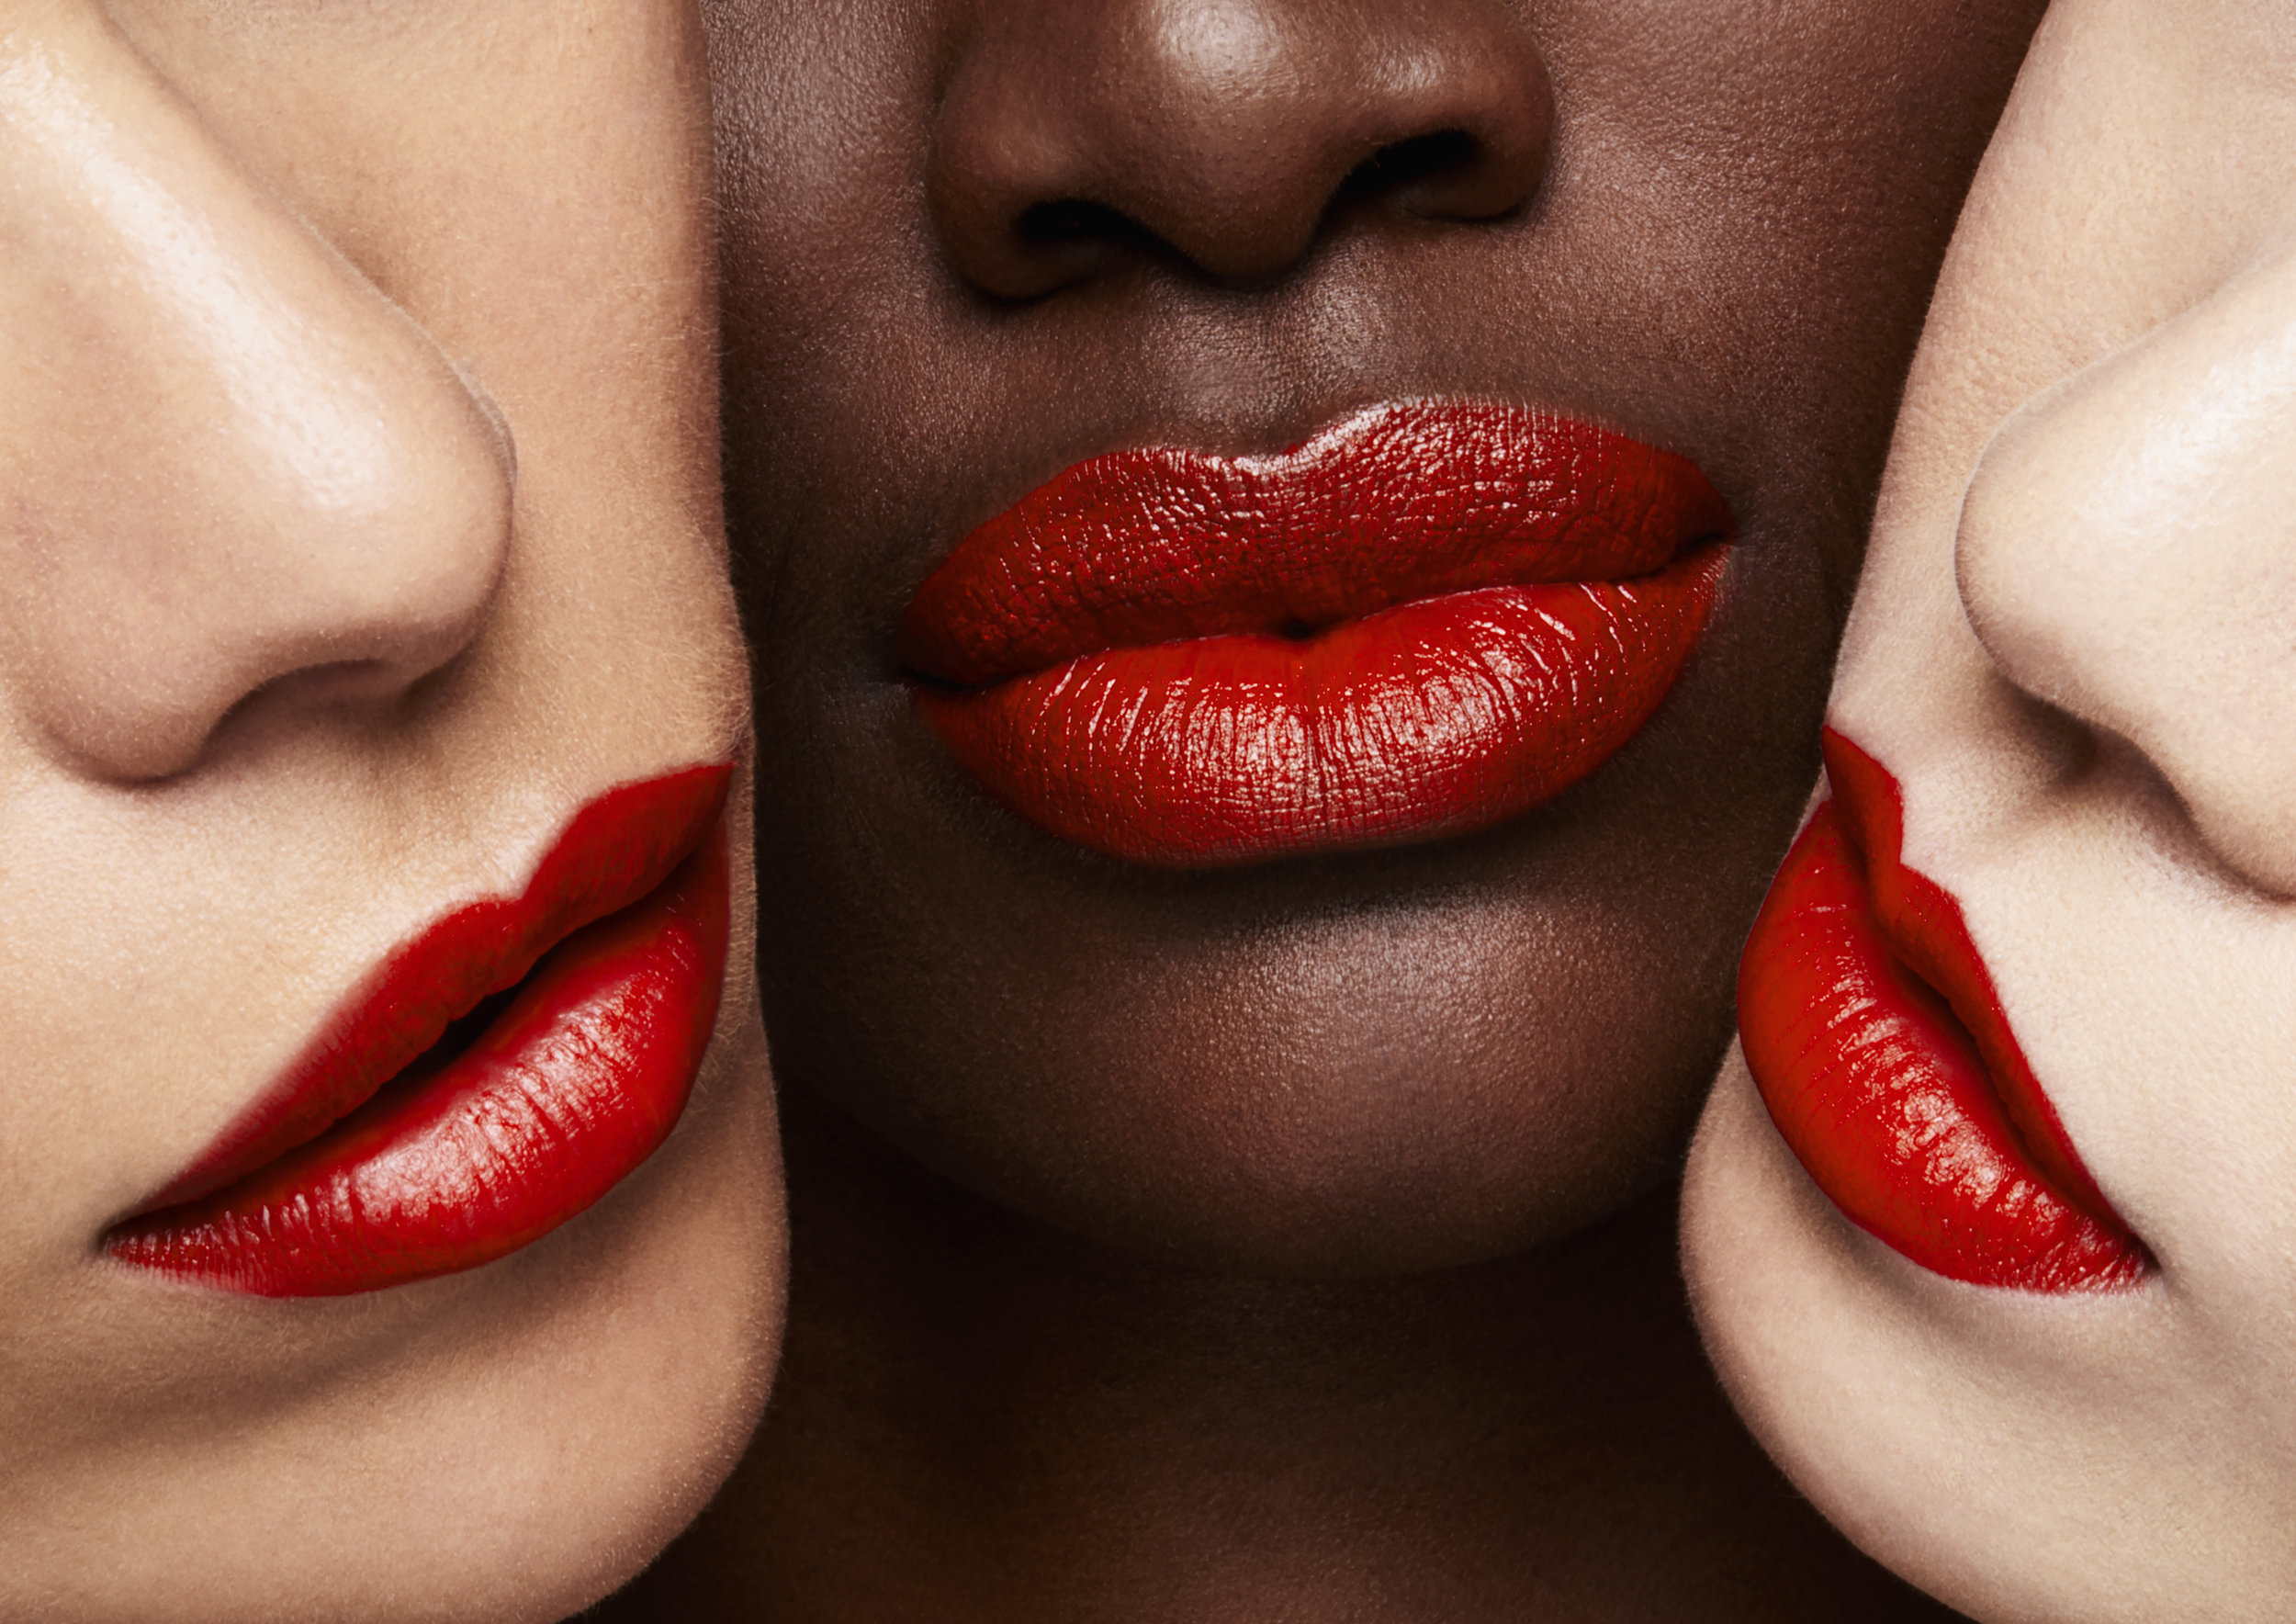 BeautyPhotography_TomFordBeauty_LipstickEditorial_By_BriJohnson_0014.jpg